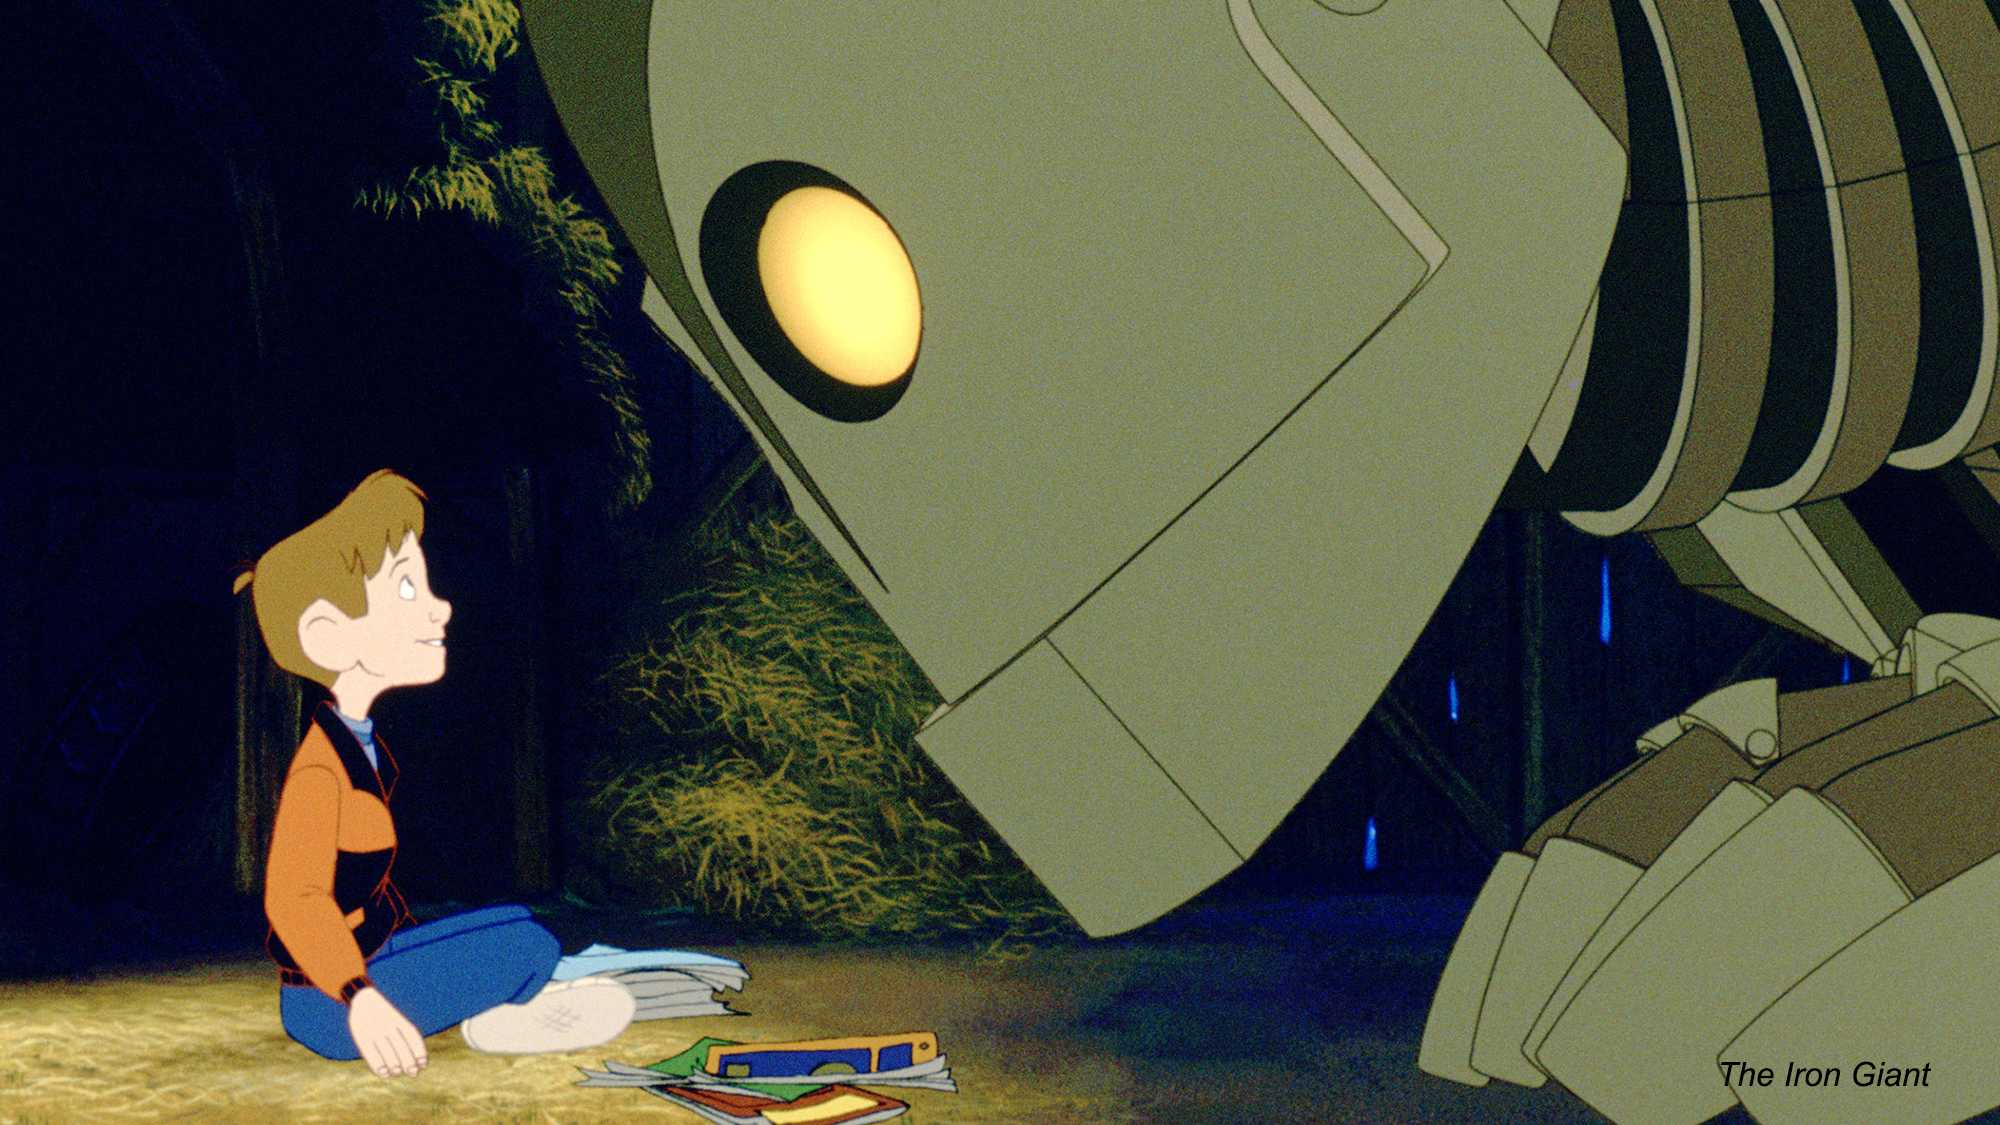 The Iron Giant (image 2)